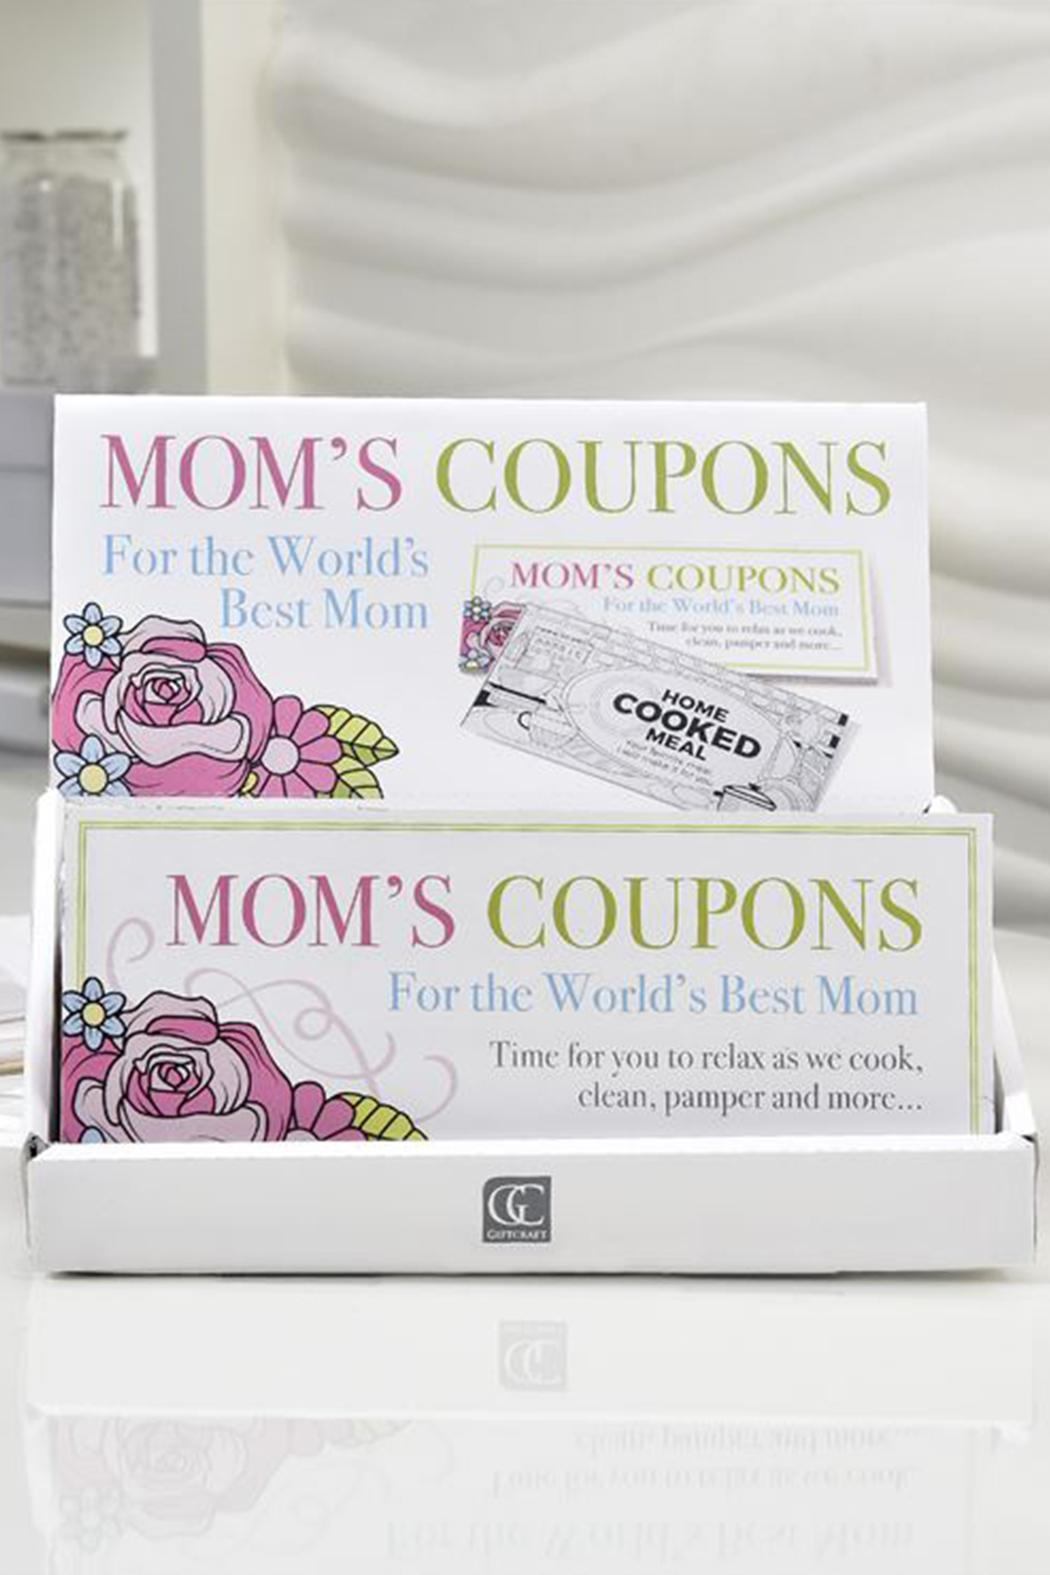 Moms Coupons